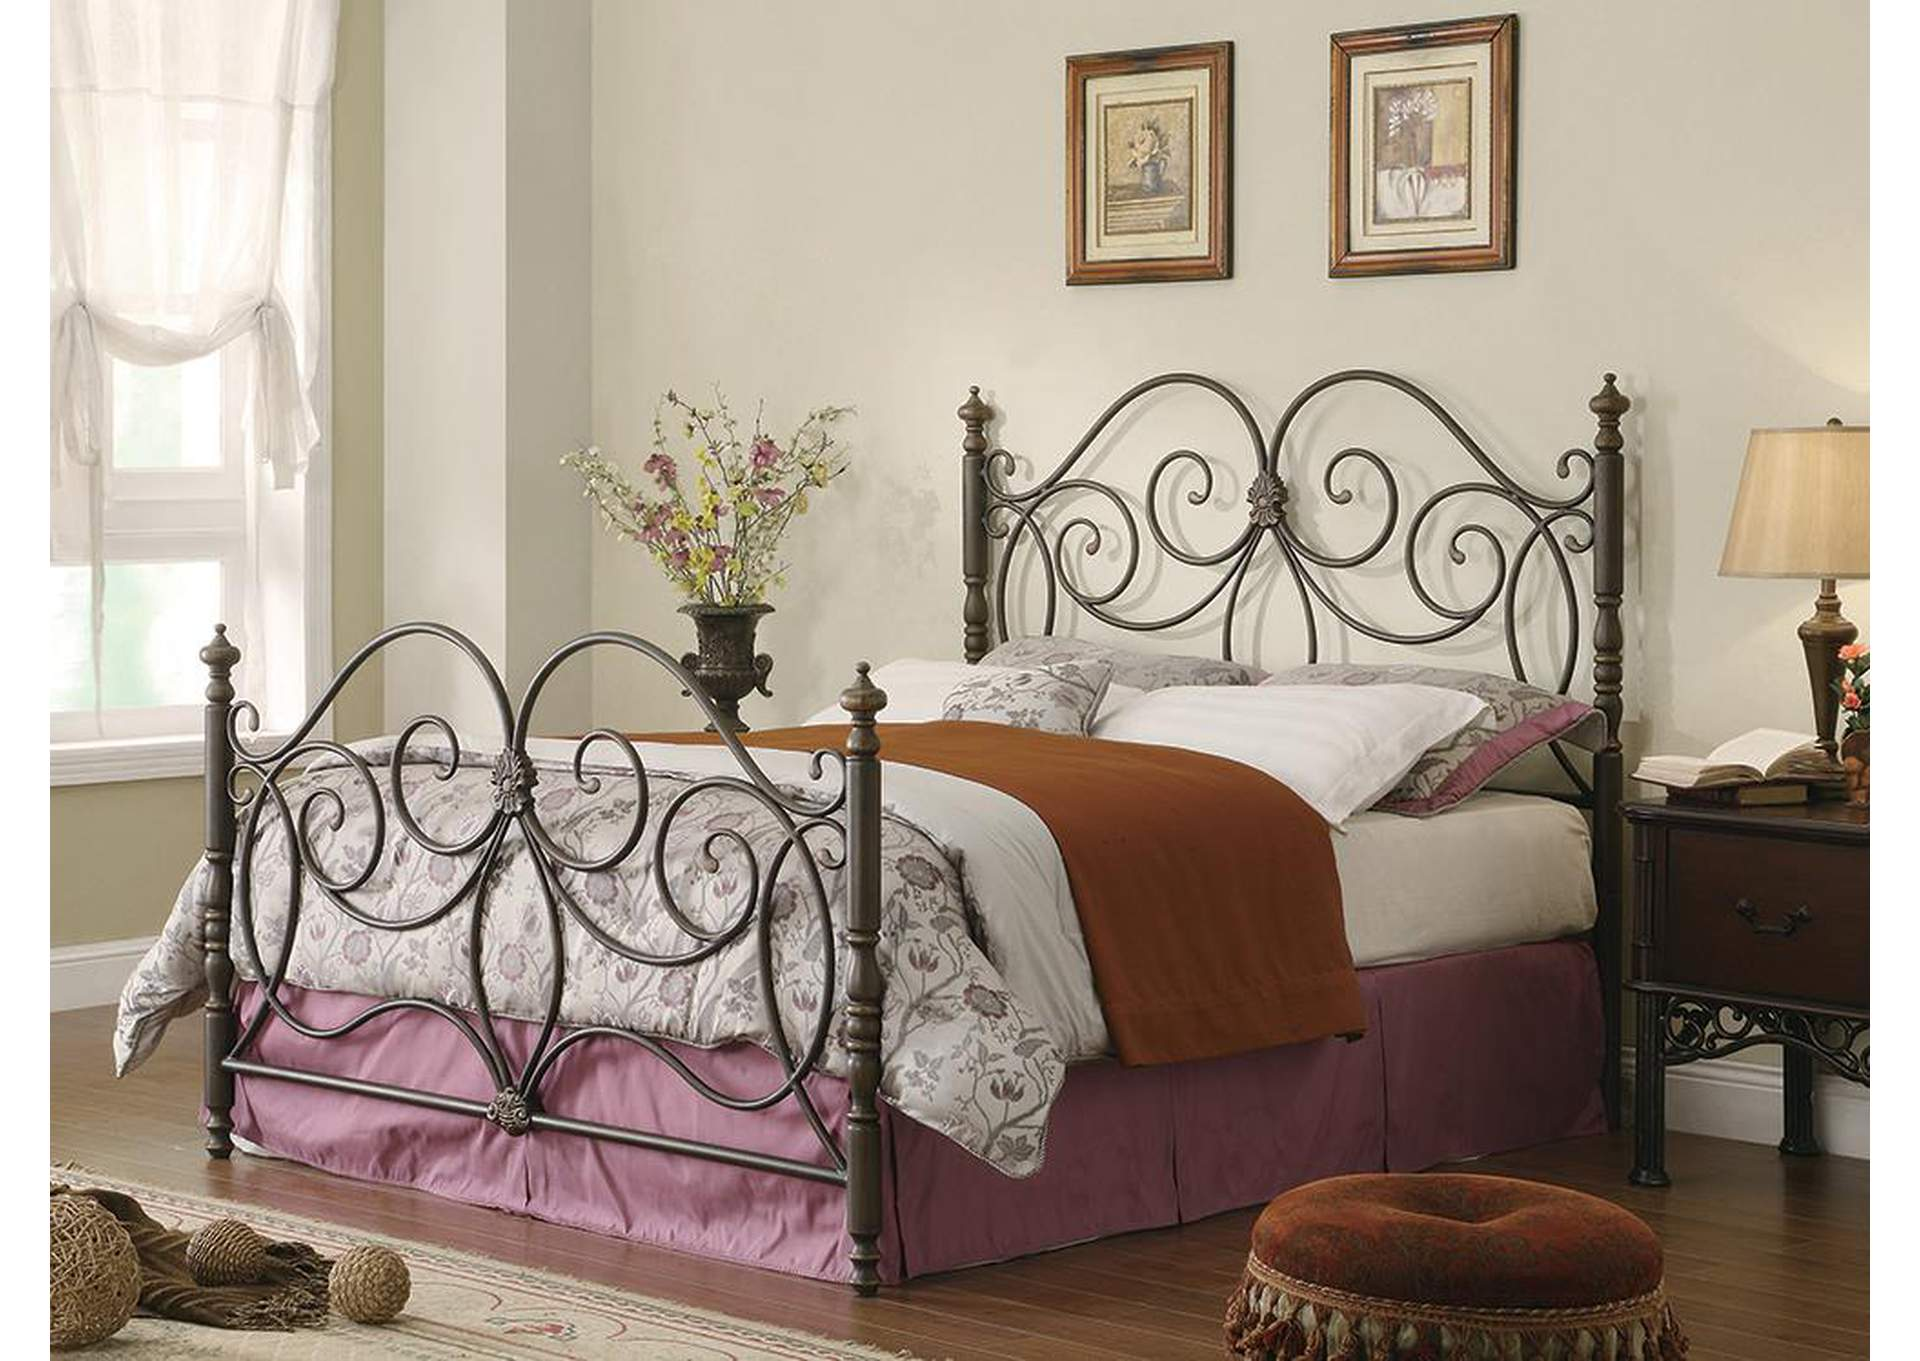 Plush Home Furniture London Caramel Metal Queen Bed Requires - Queen bedrooms